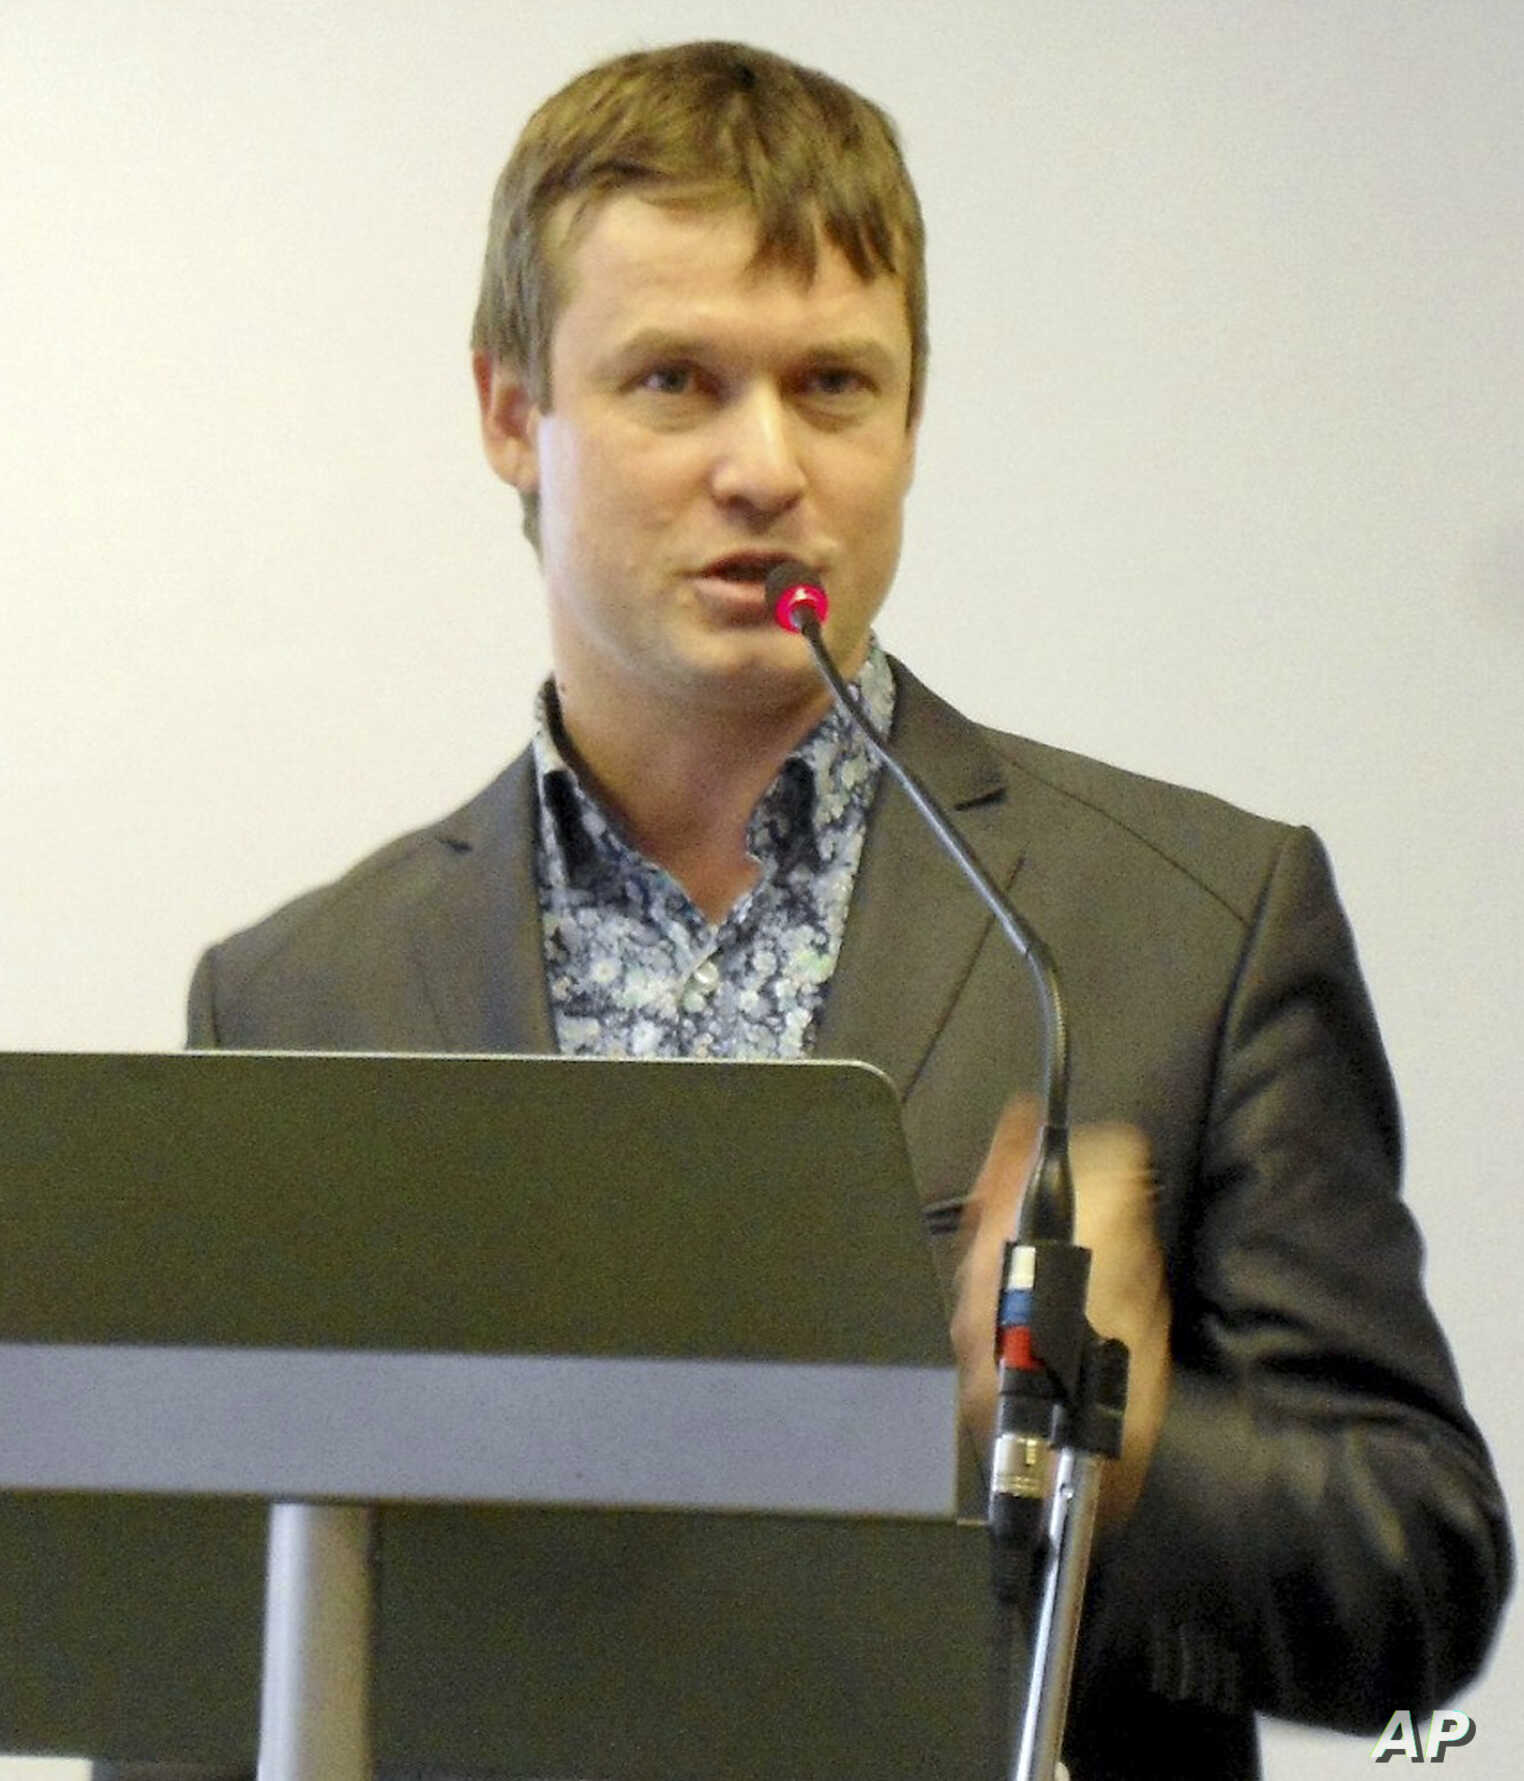 Leonid Razvozzhayev speaks at an undisclosed location in this undated photo provided by Associated Press Television News.